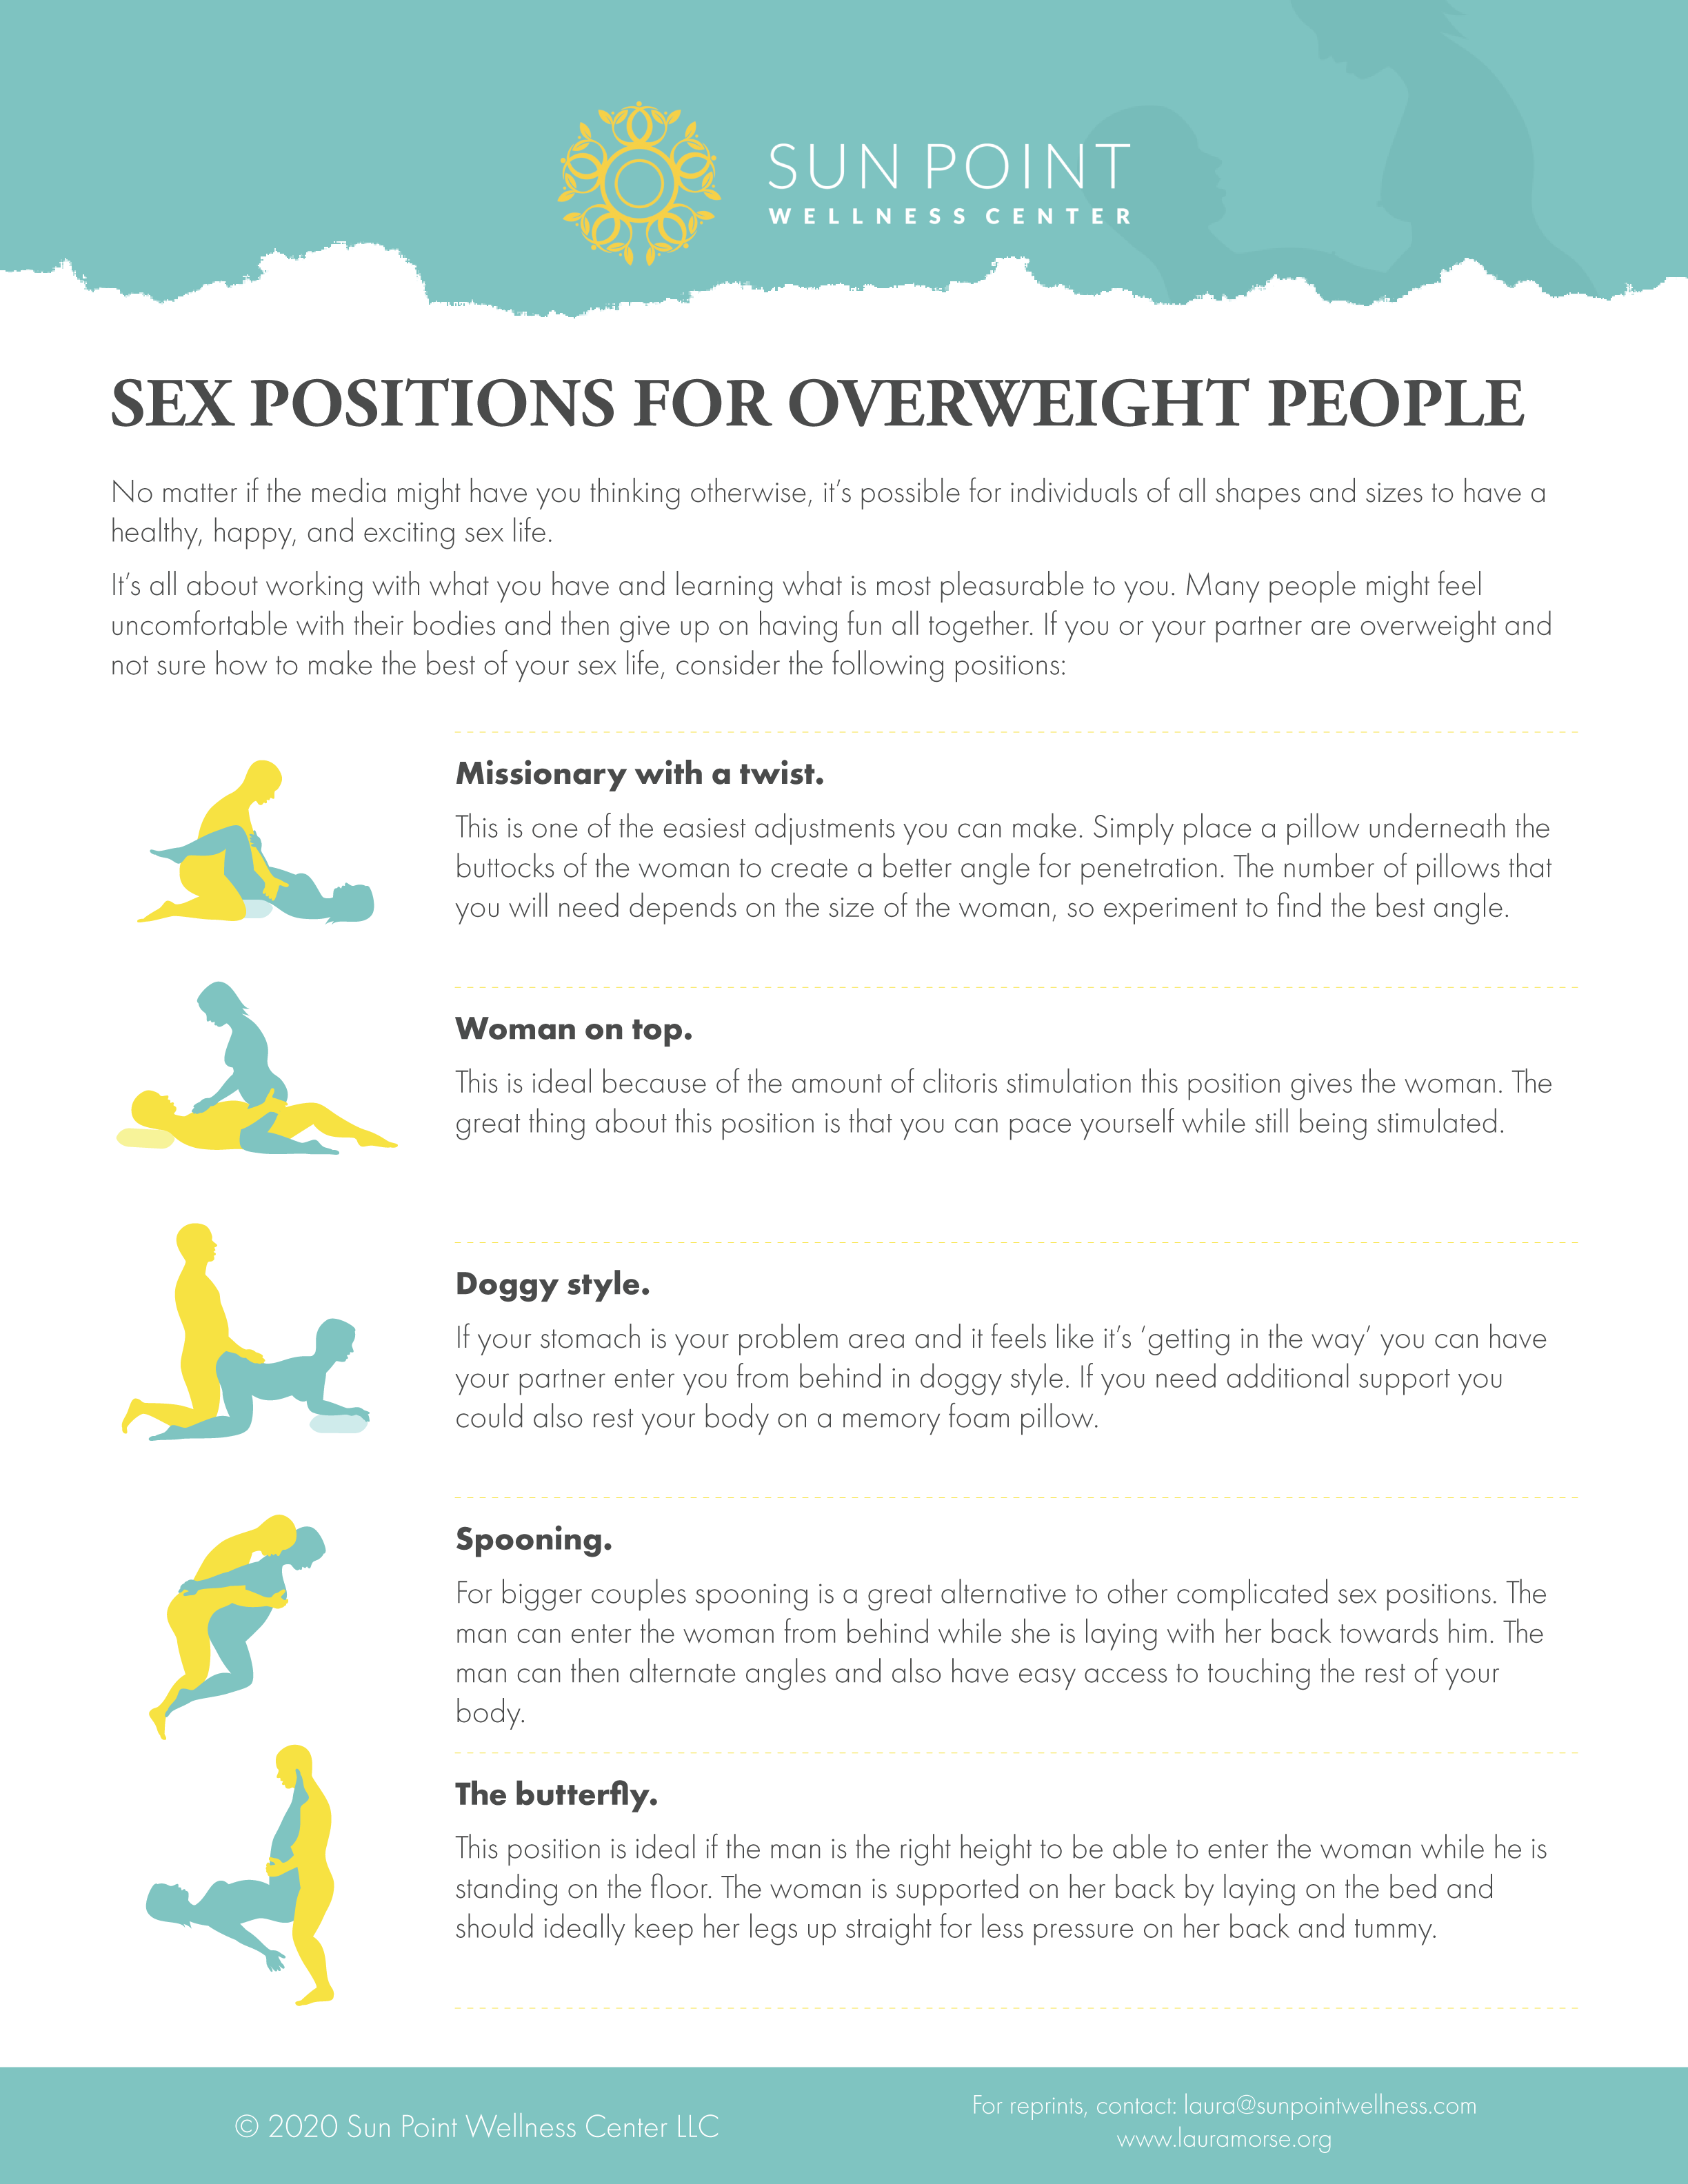 Obese people have sex